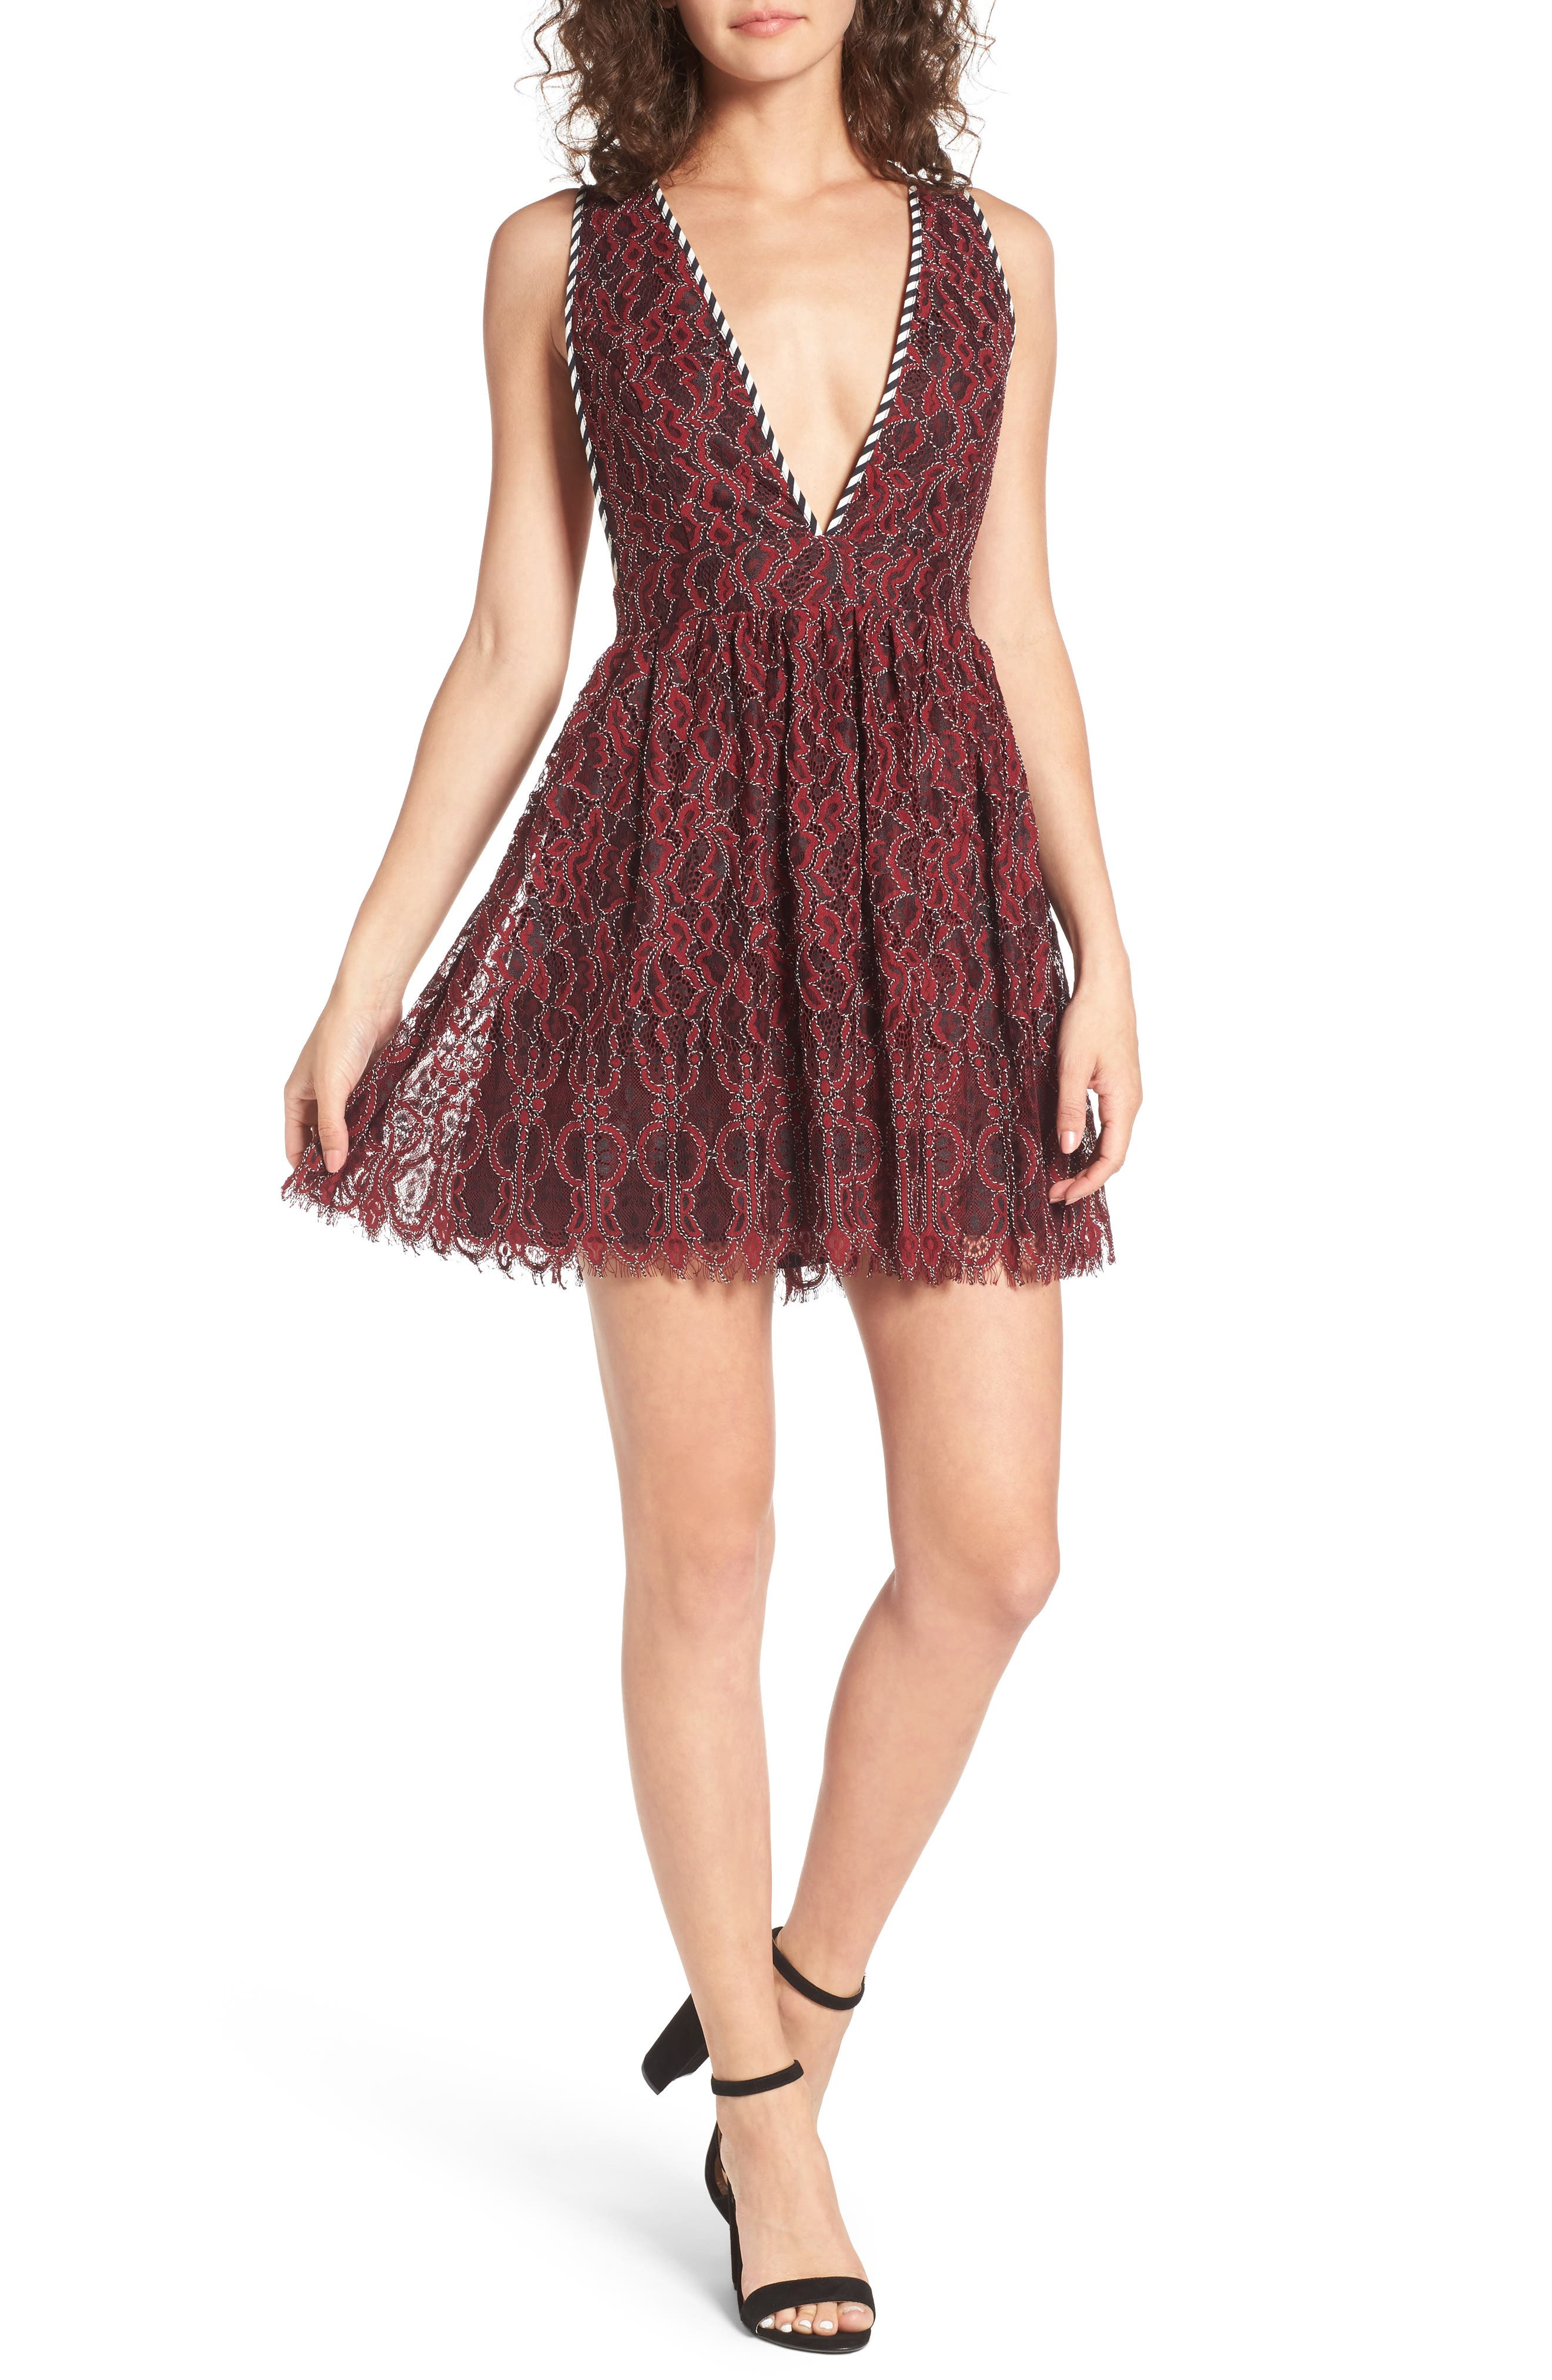 Alternate Image 1 Selected - NBD Starry Night Lace Minidress